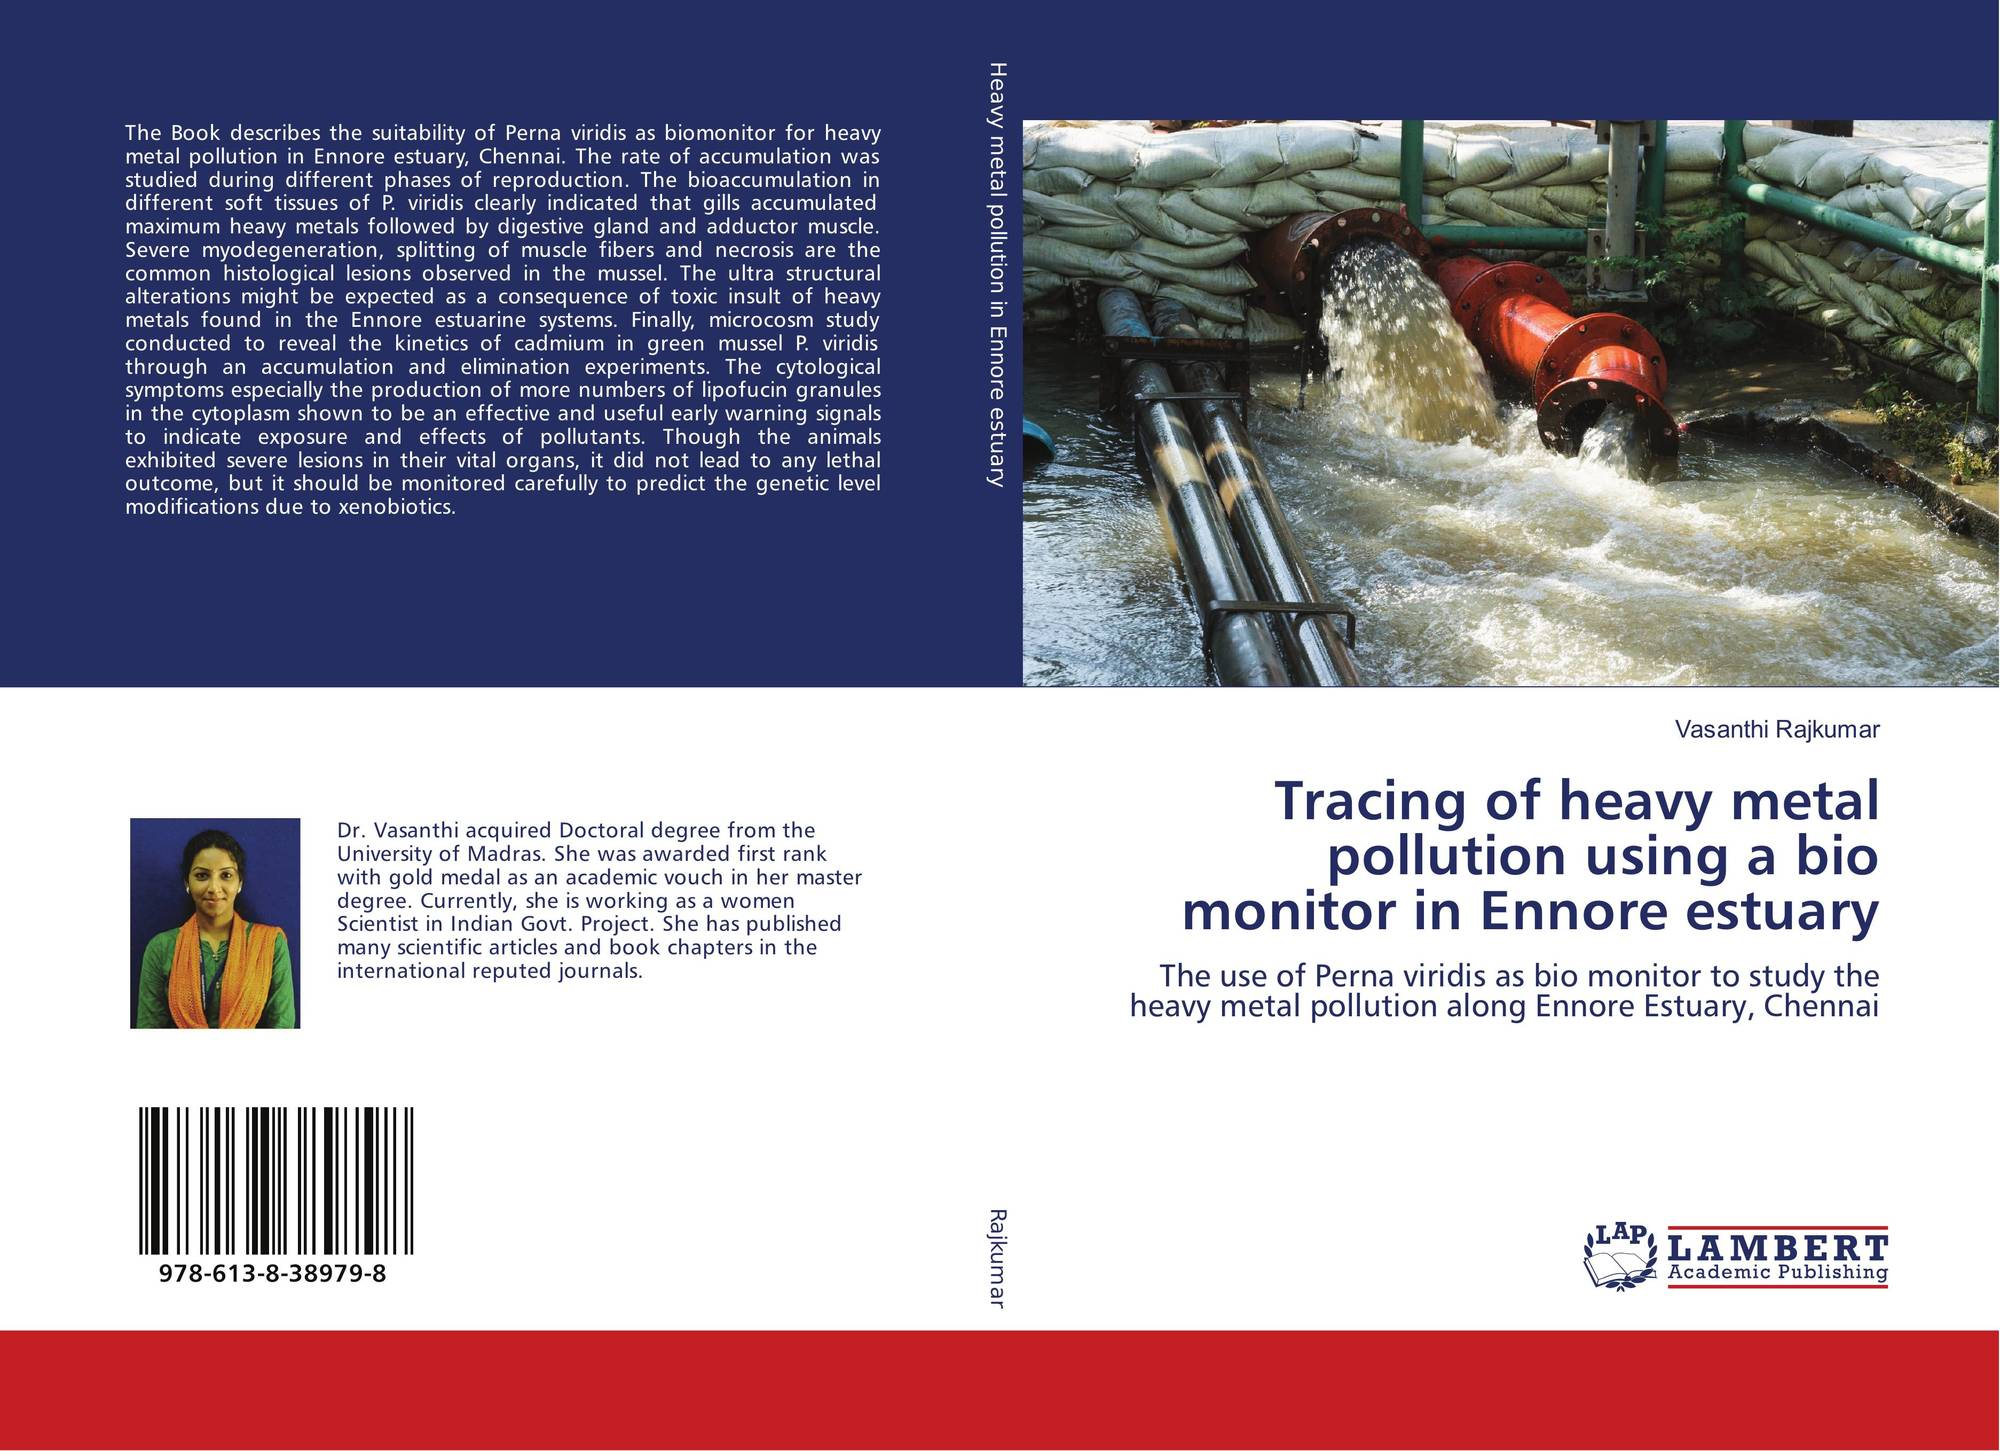 Tracing of heavy metal pollution using a bio monitor in Ennore